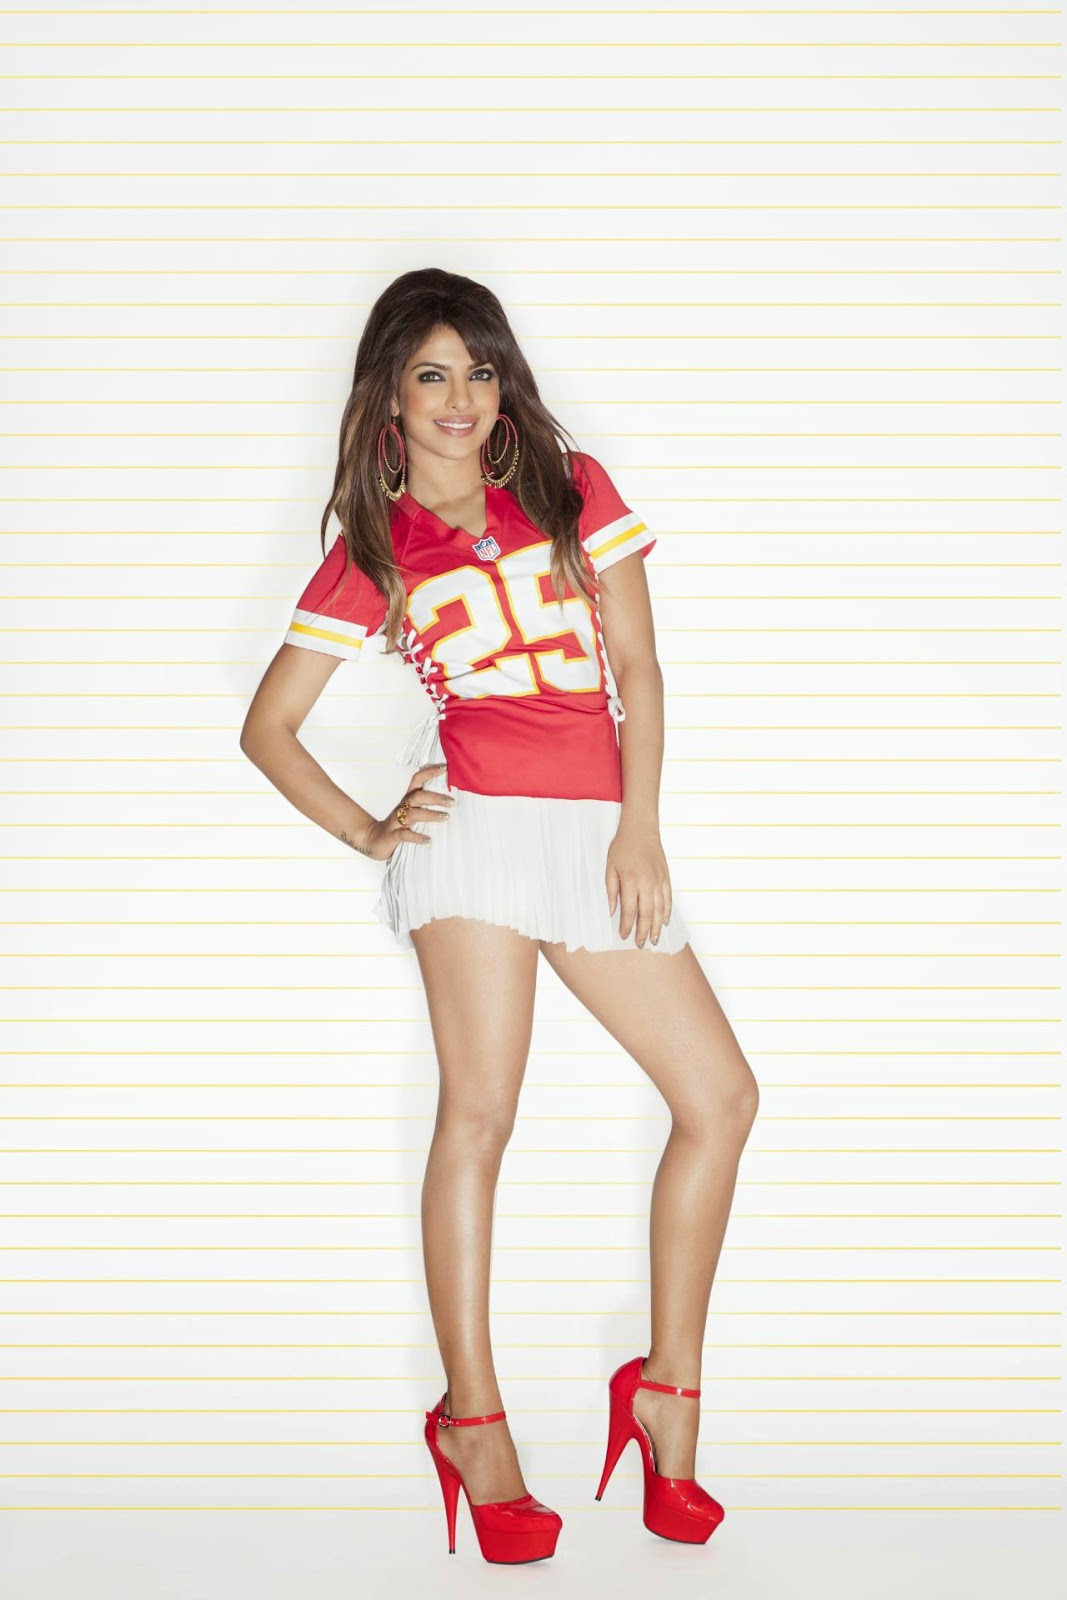 Priyanka Chopra in NFL Jersey & White Mini-skirt